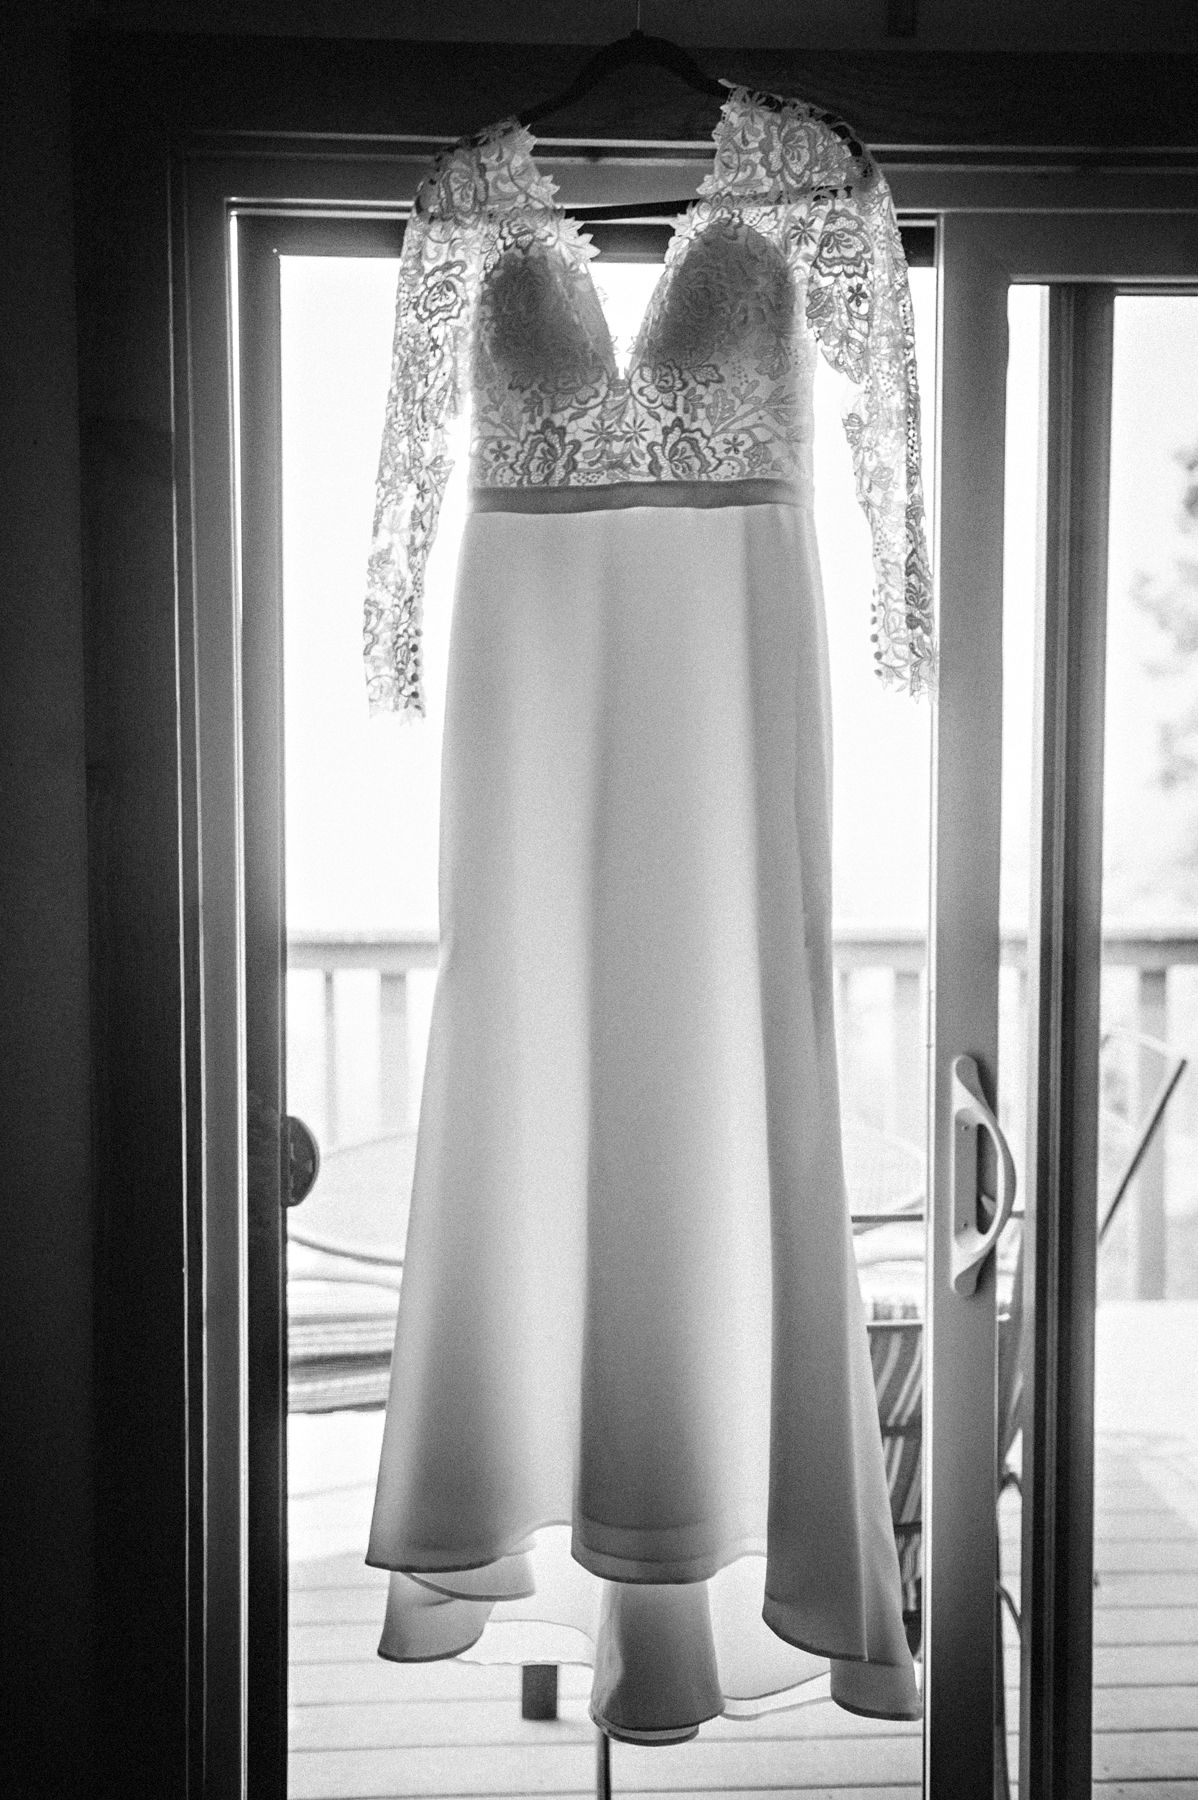 Black and white photo of bride's dress hanging